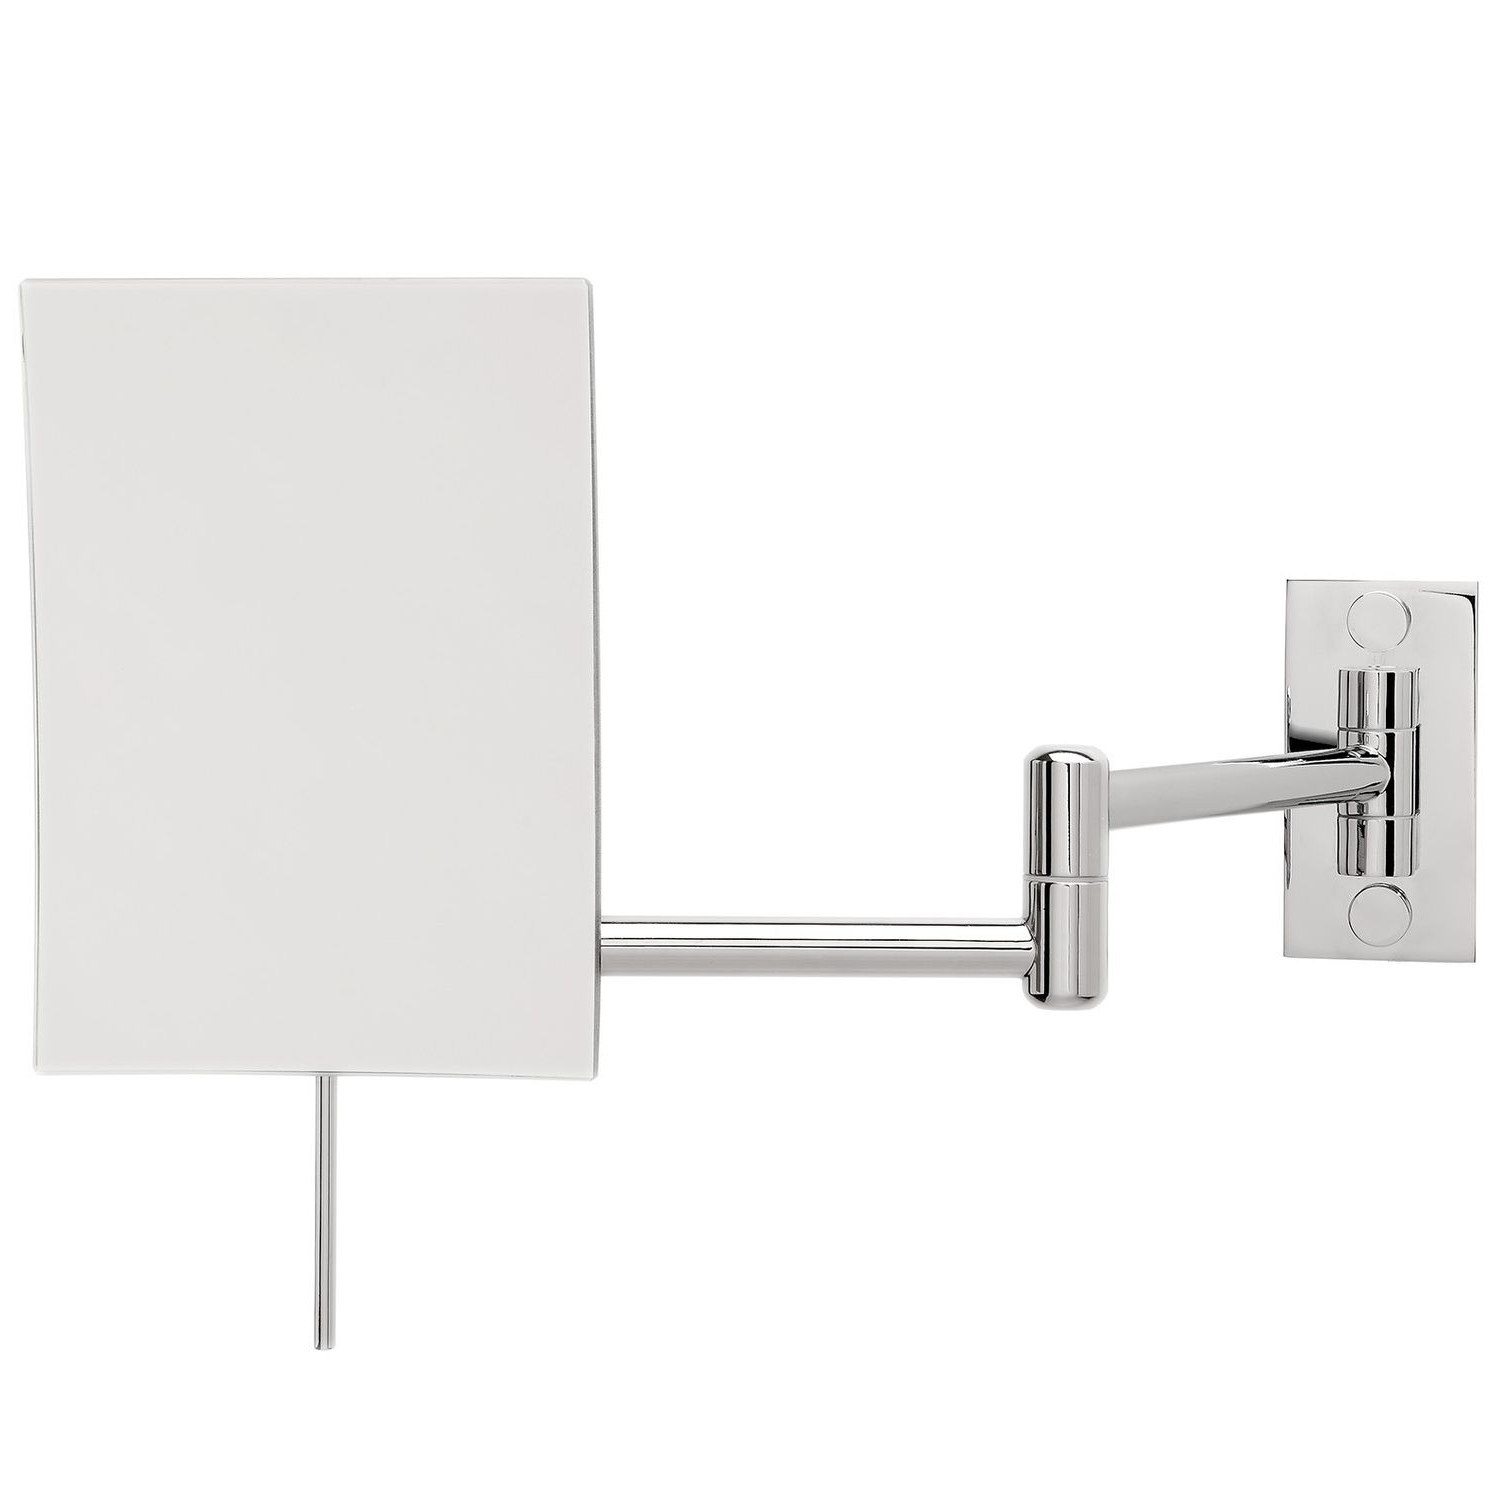 2019 Wall Mounted Bathroom Mirror / Magnifying / Contemporary With Regard To Magnifying Wall Mirrors For Bathroom (Gallery 19 of 20)